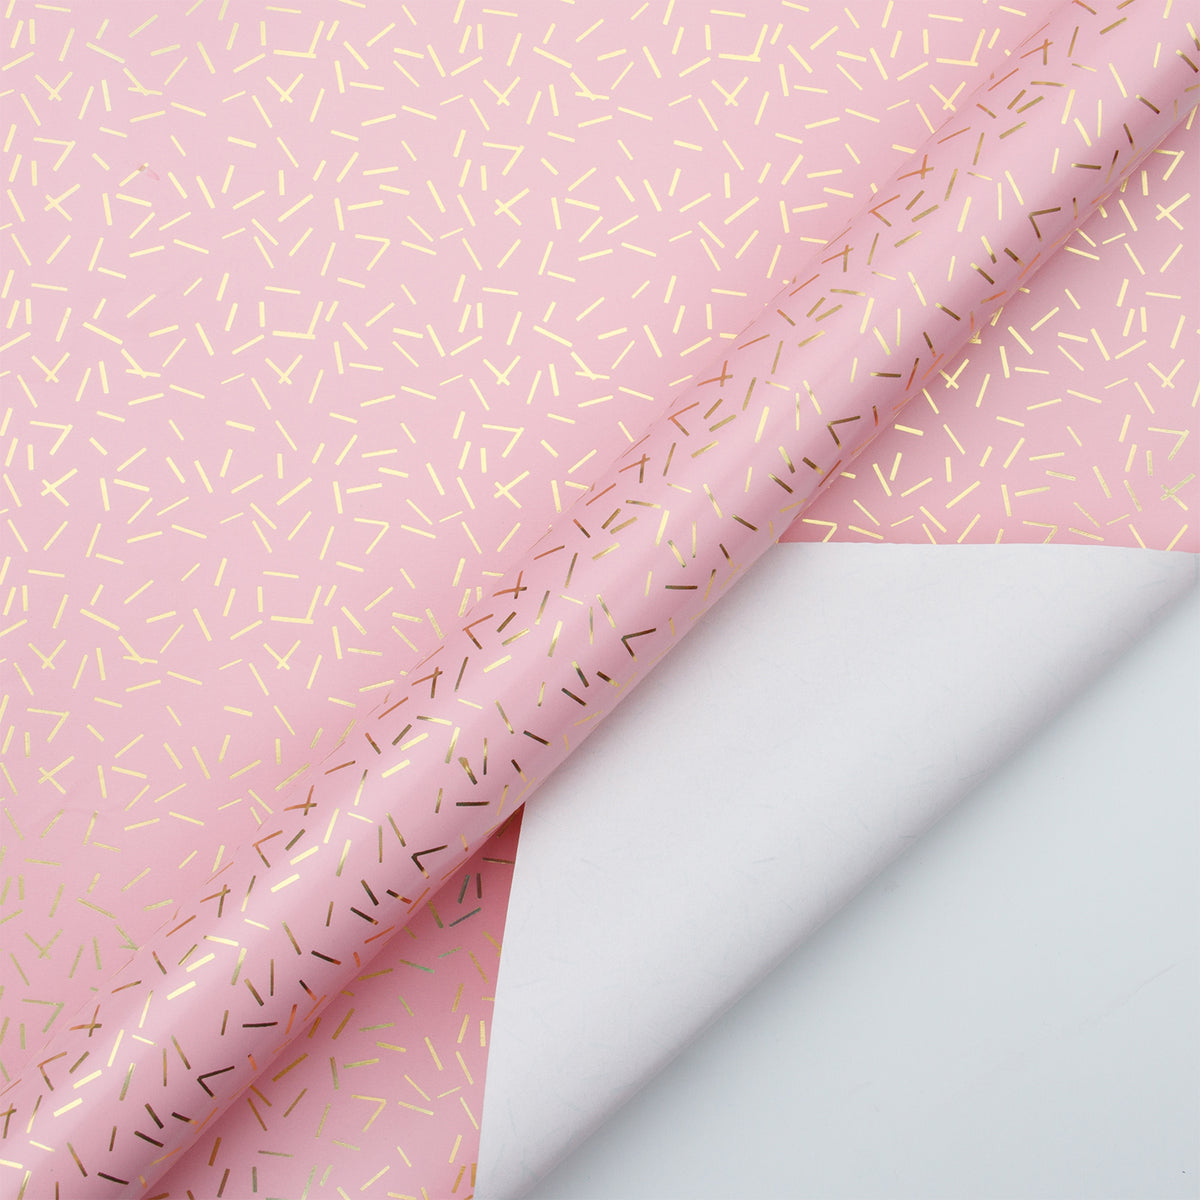 Wrapaholic-Pink-with-Gold Foil-Design- Gift-Wrapping-Paper-Roll-2